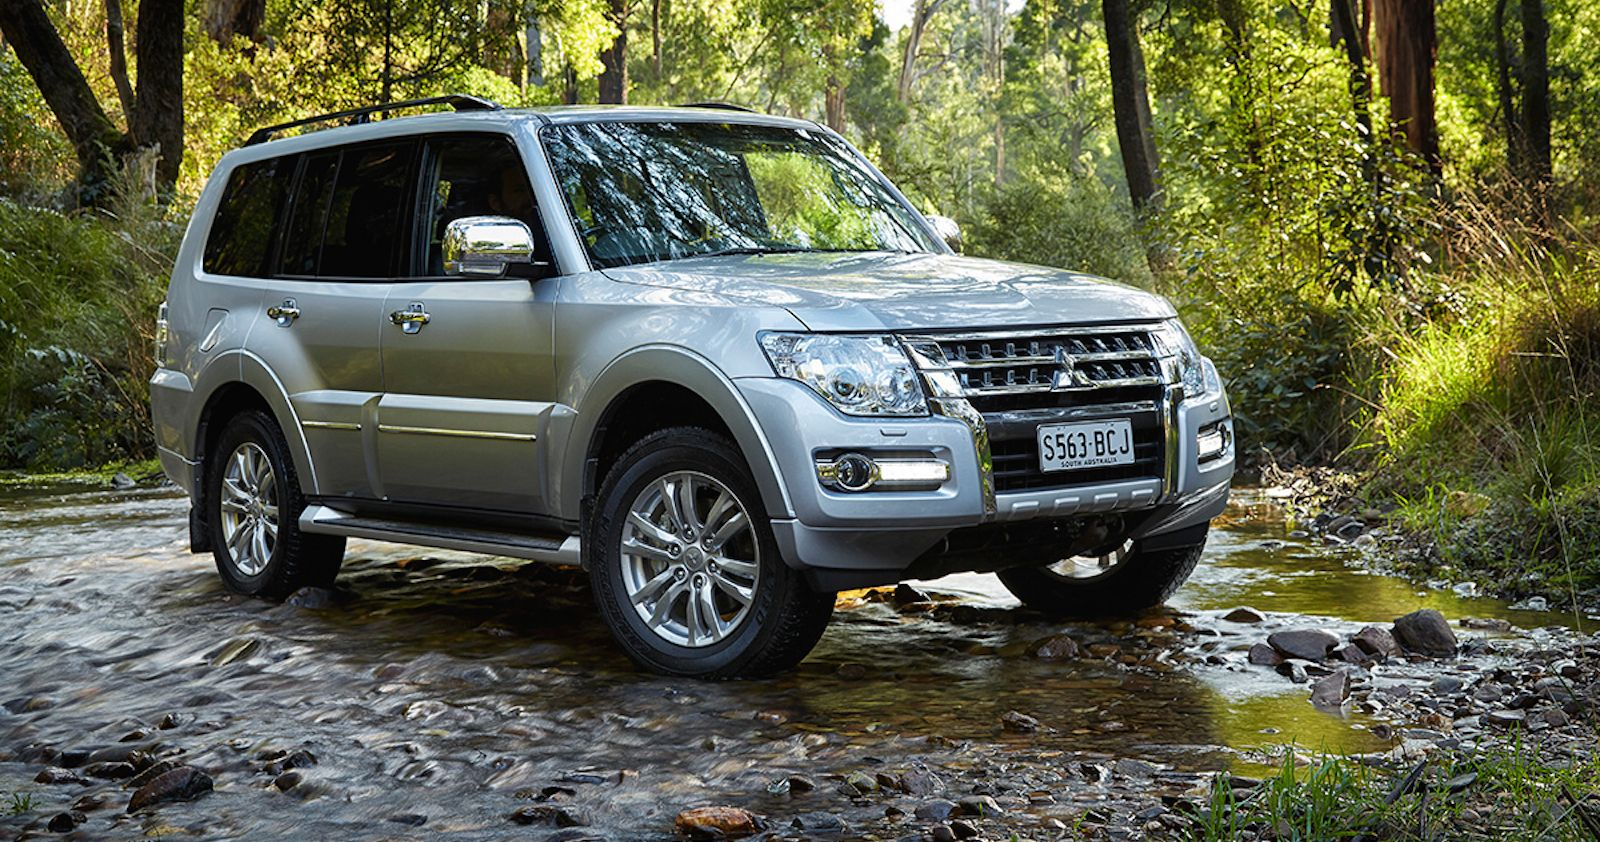 2015 Mitsubishi Pajero Pricing And Specifications Pajero Carros